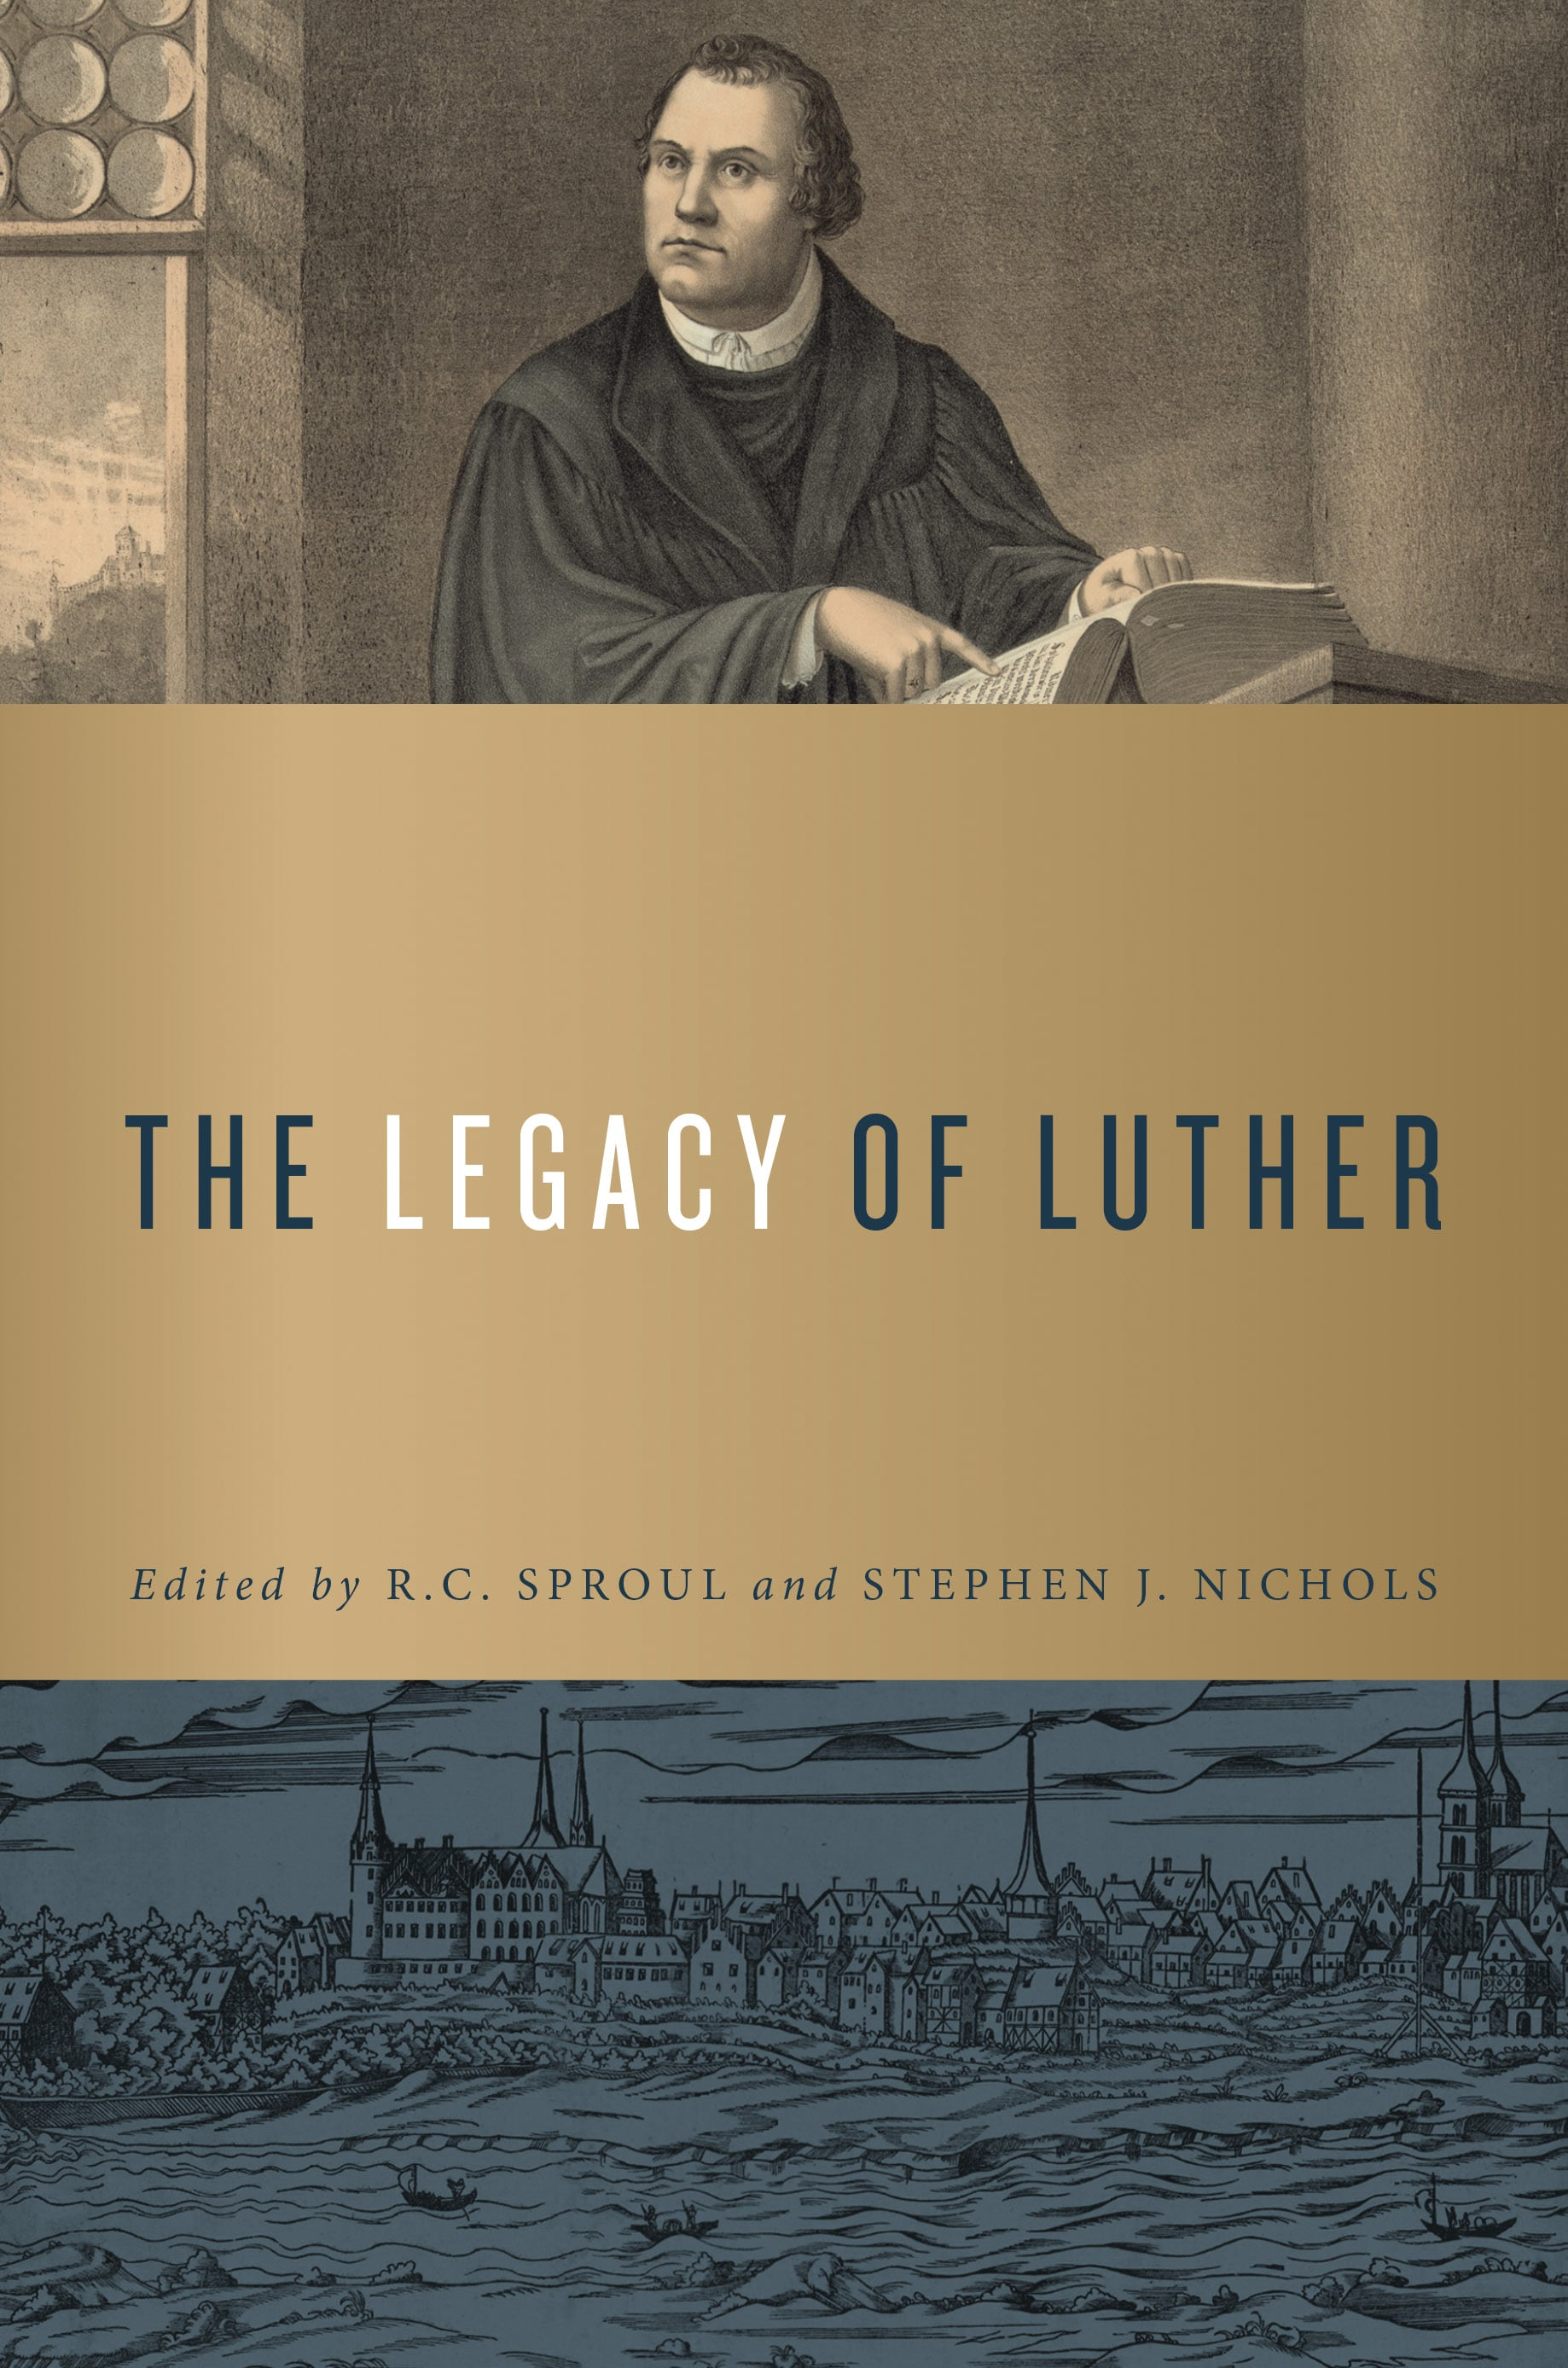 Image: Front Cover (high Res)